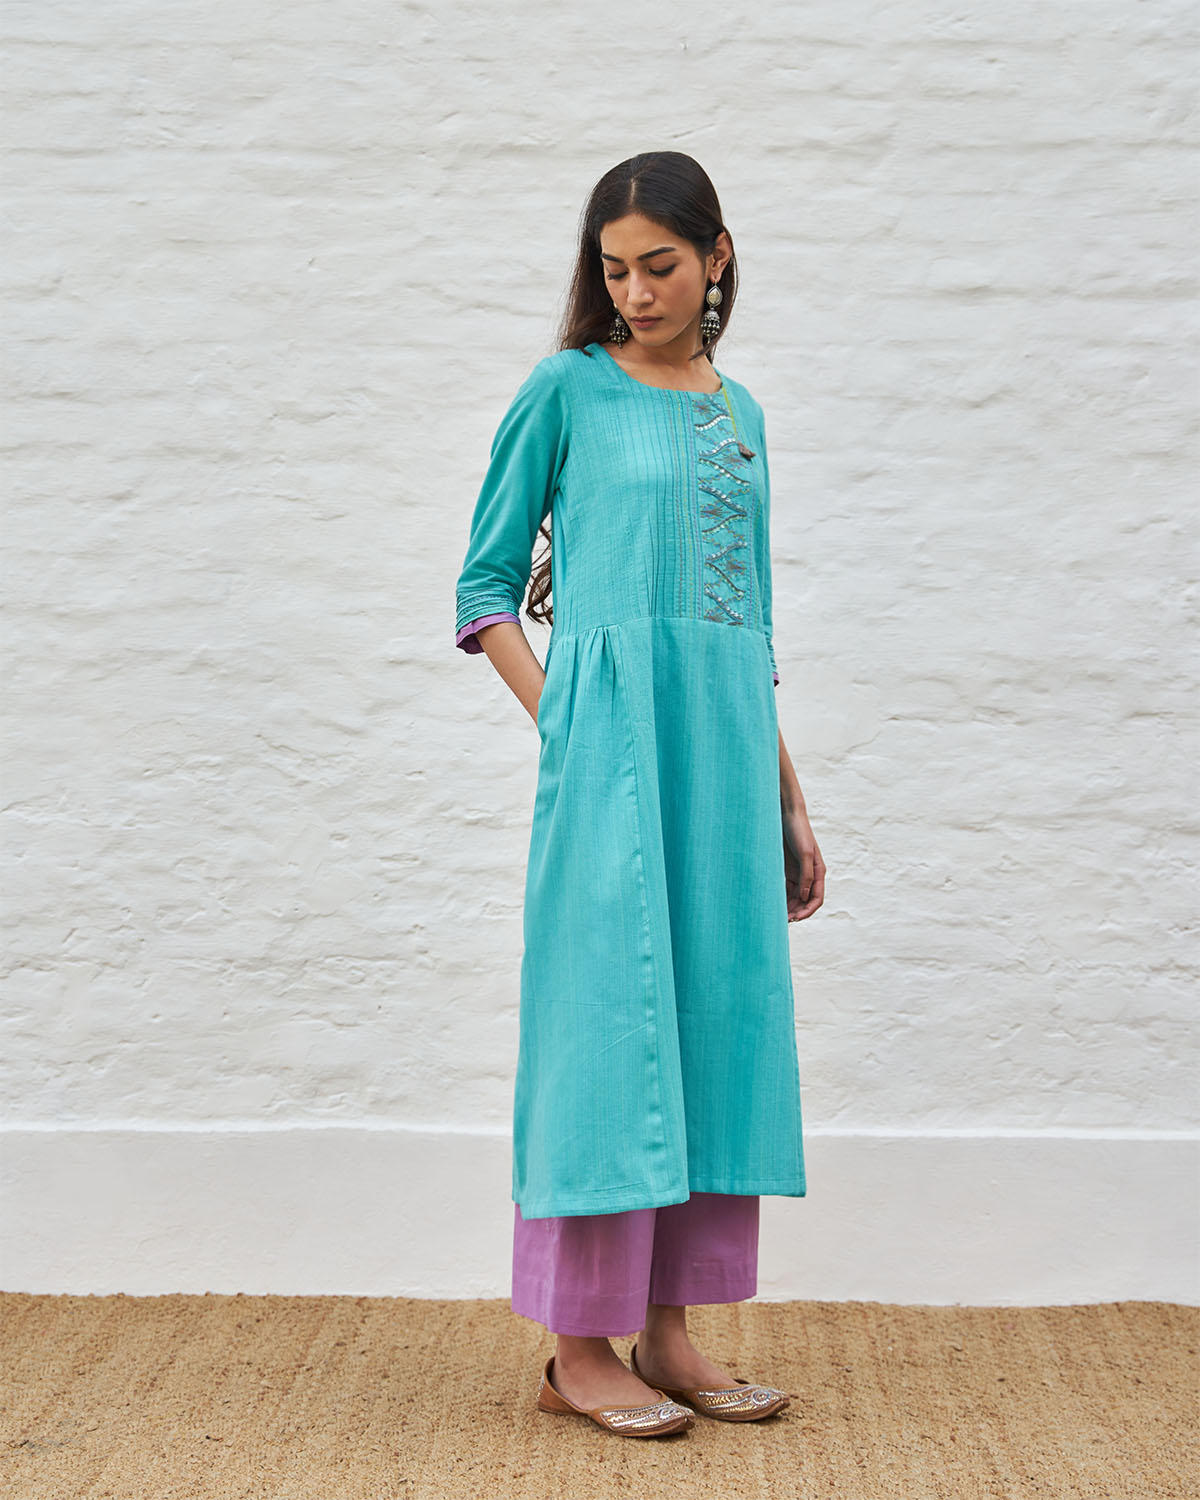 Aqua Blue Handwoven Cotton Tunic with Pintuck Detailing & Handwork